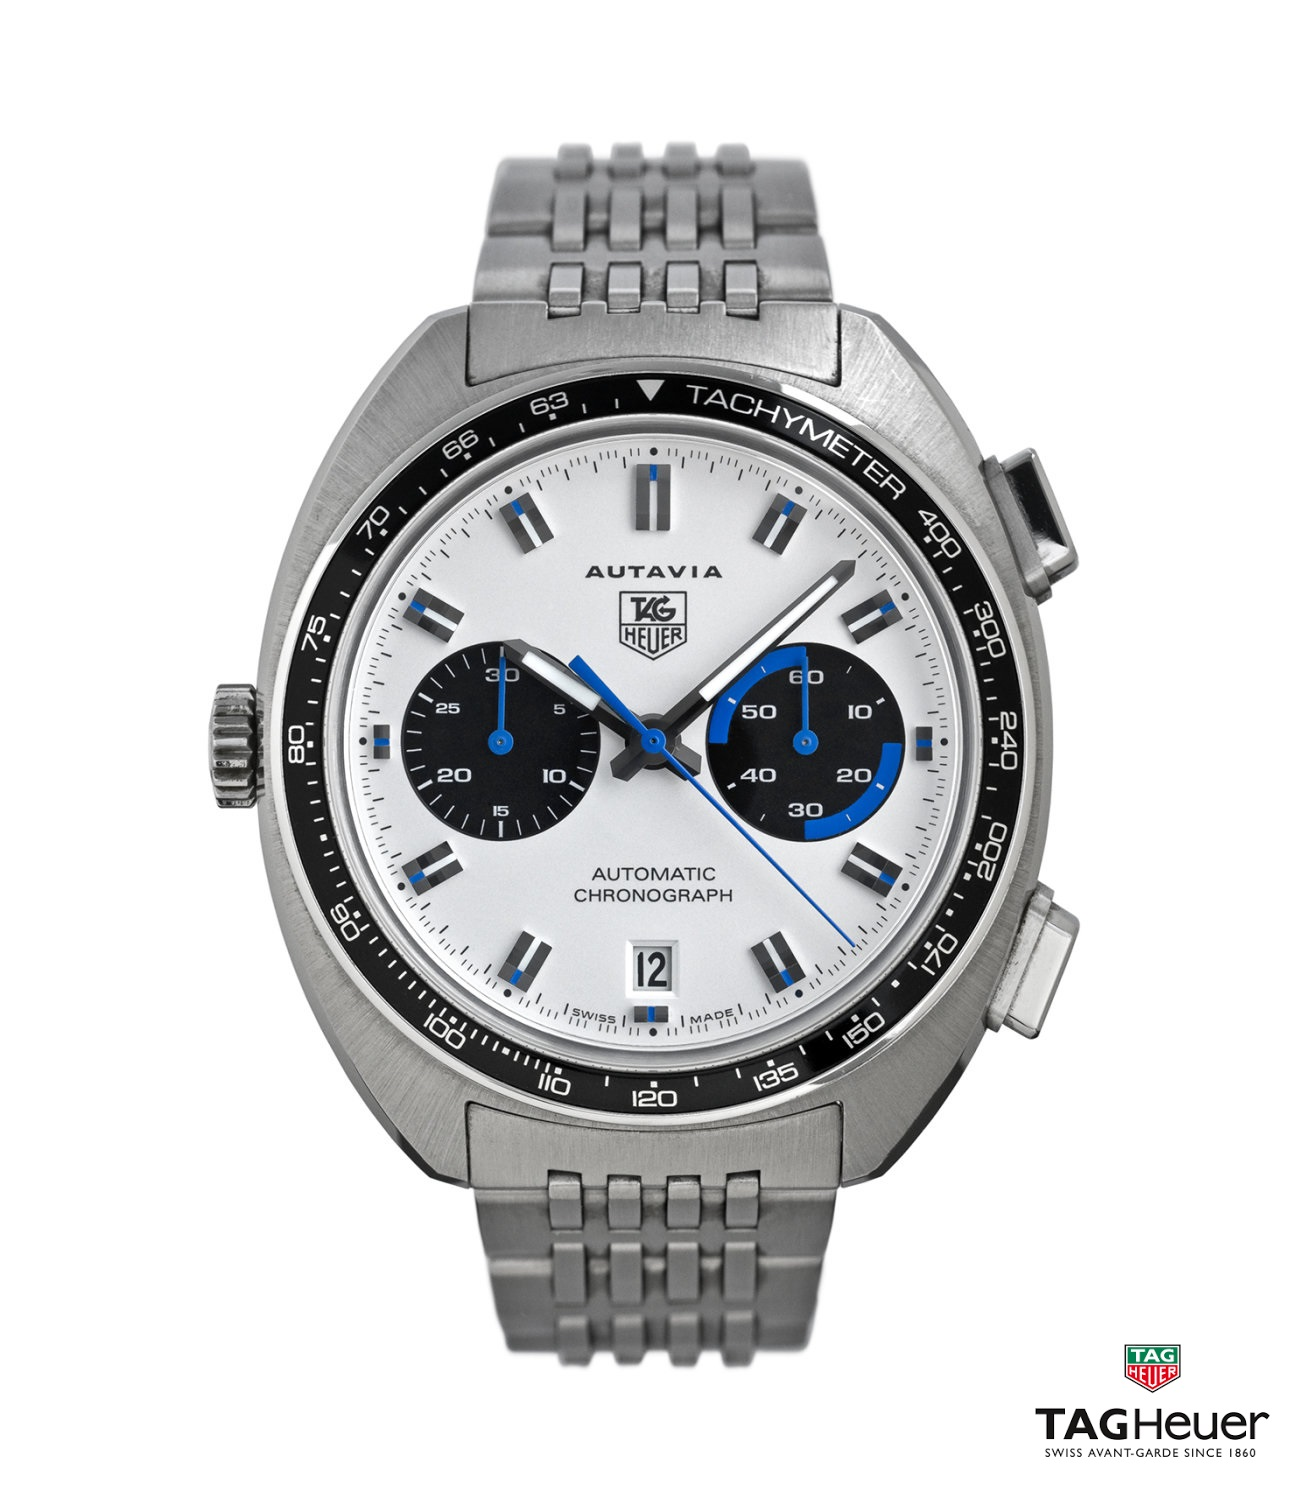 tag-heuer-autavia-reissue-cy2110_30_1